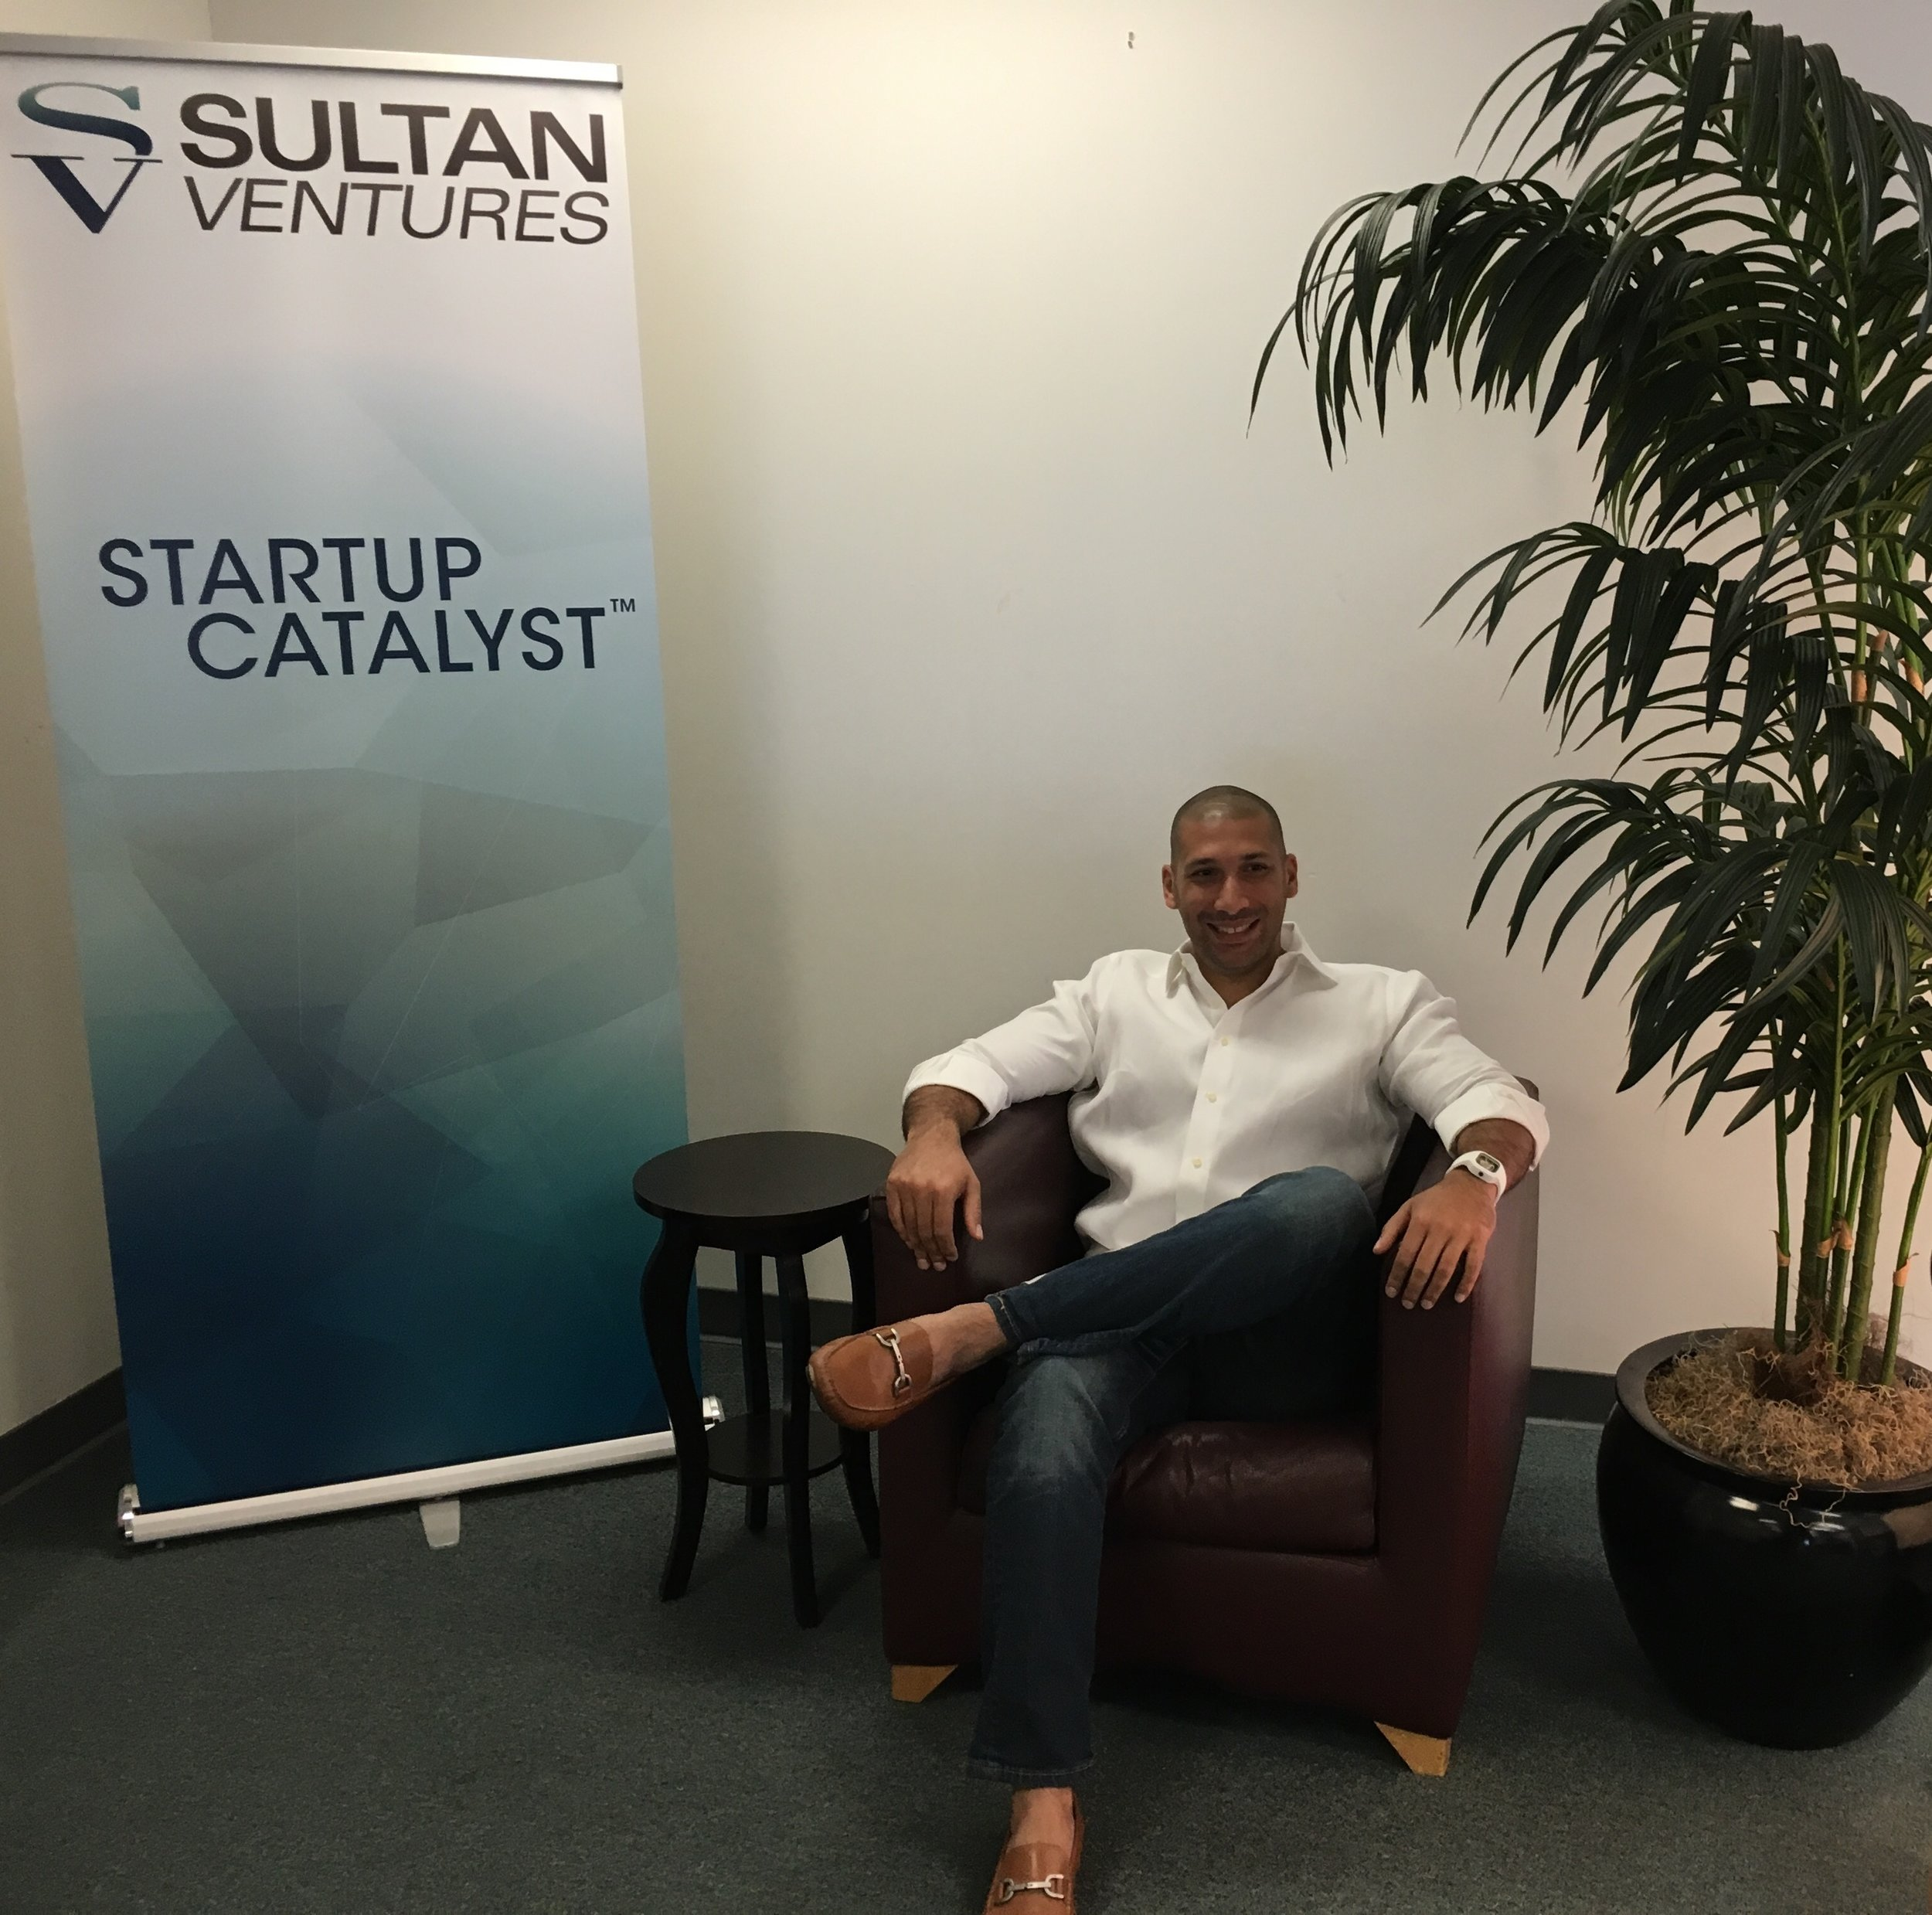 Tarik Sultan is the Founder and Managing Partner of Sultan Ventures, an investment firm, and Founder and Managing Partner of XLR8UH, the University of Hawaii (UH) venture accelerator program